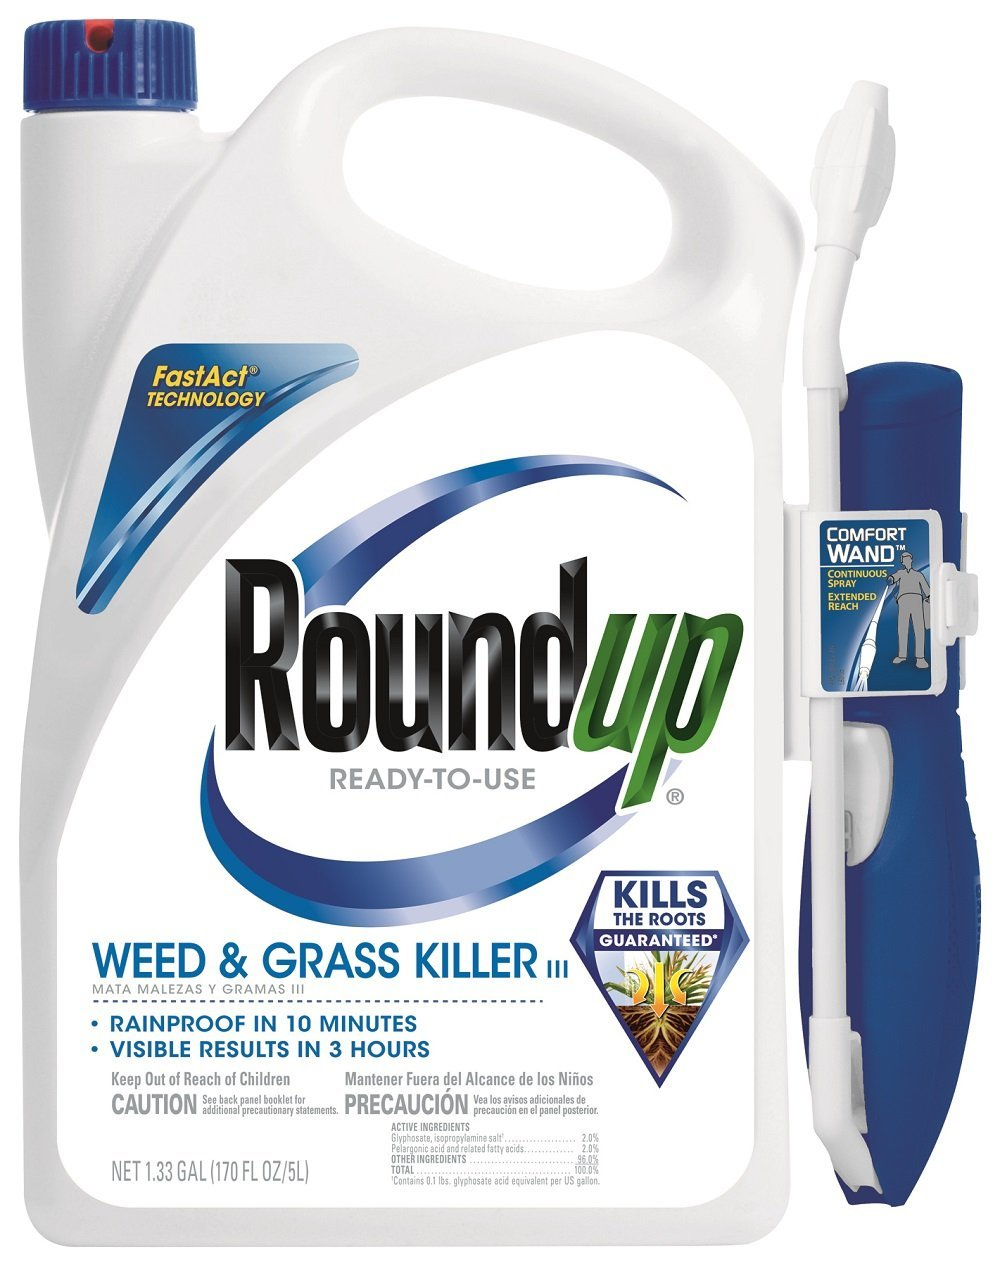 Roundup 5200210 Weed and Grass Killer III Ready-to-Use Comfort Wand Sprayer comes with its comfort wand making it a convenient choice